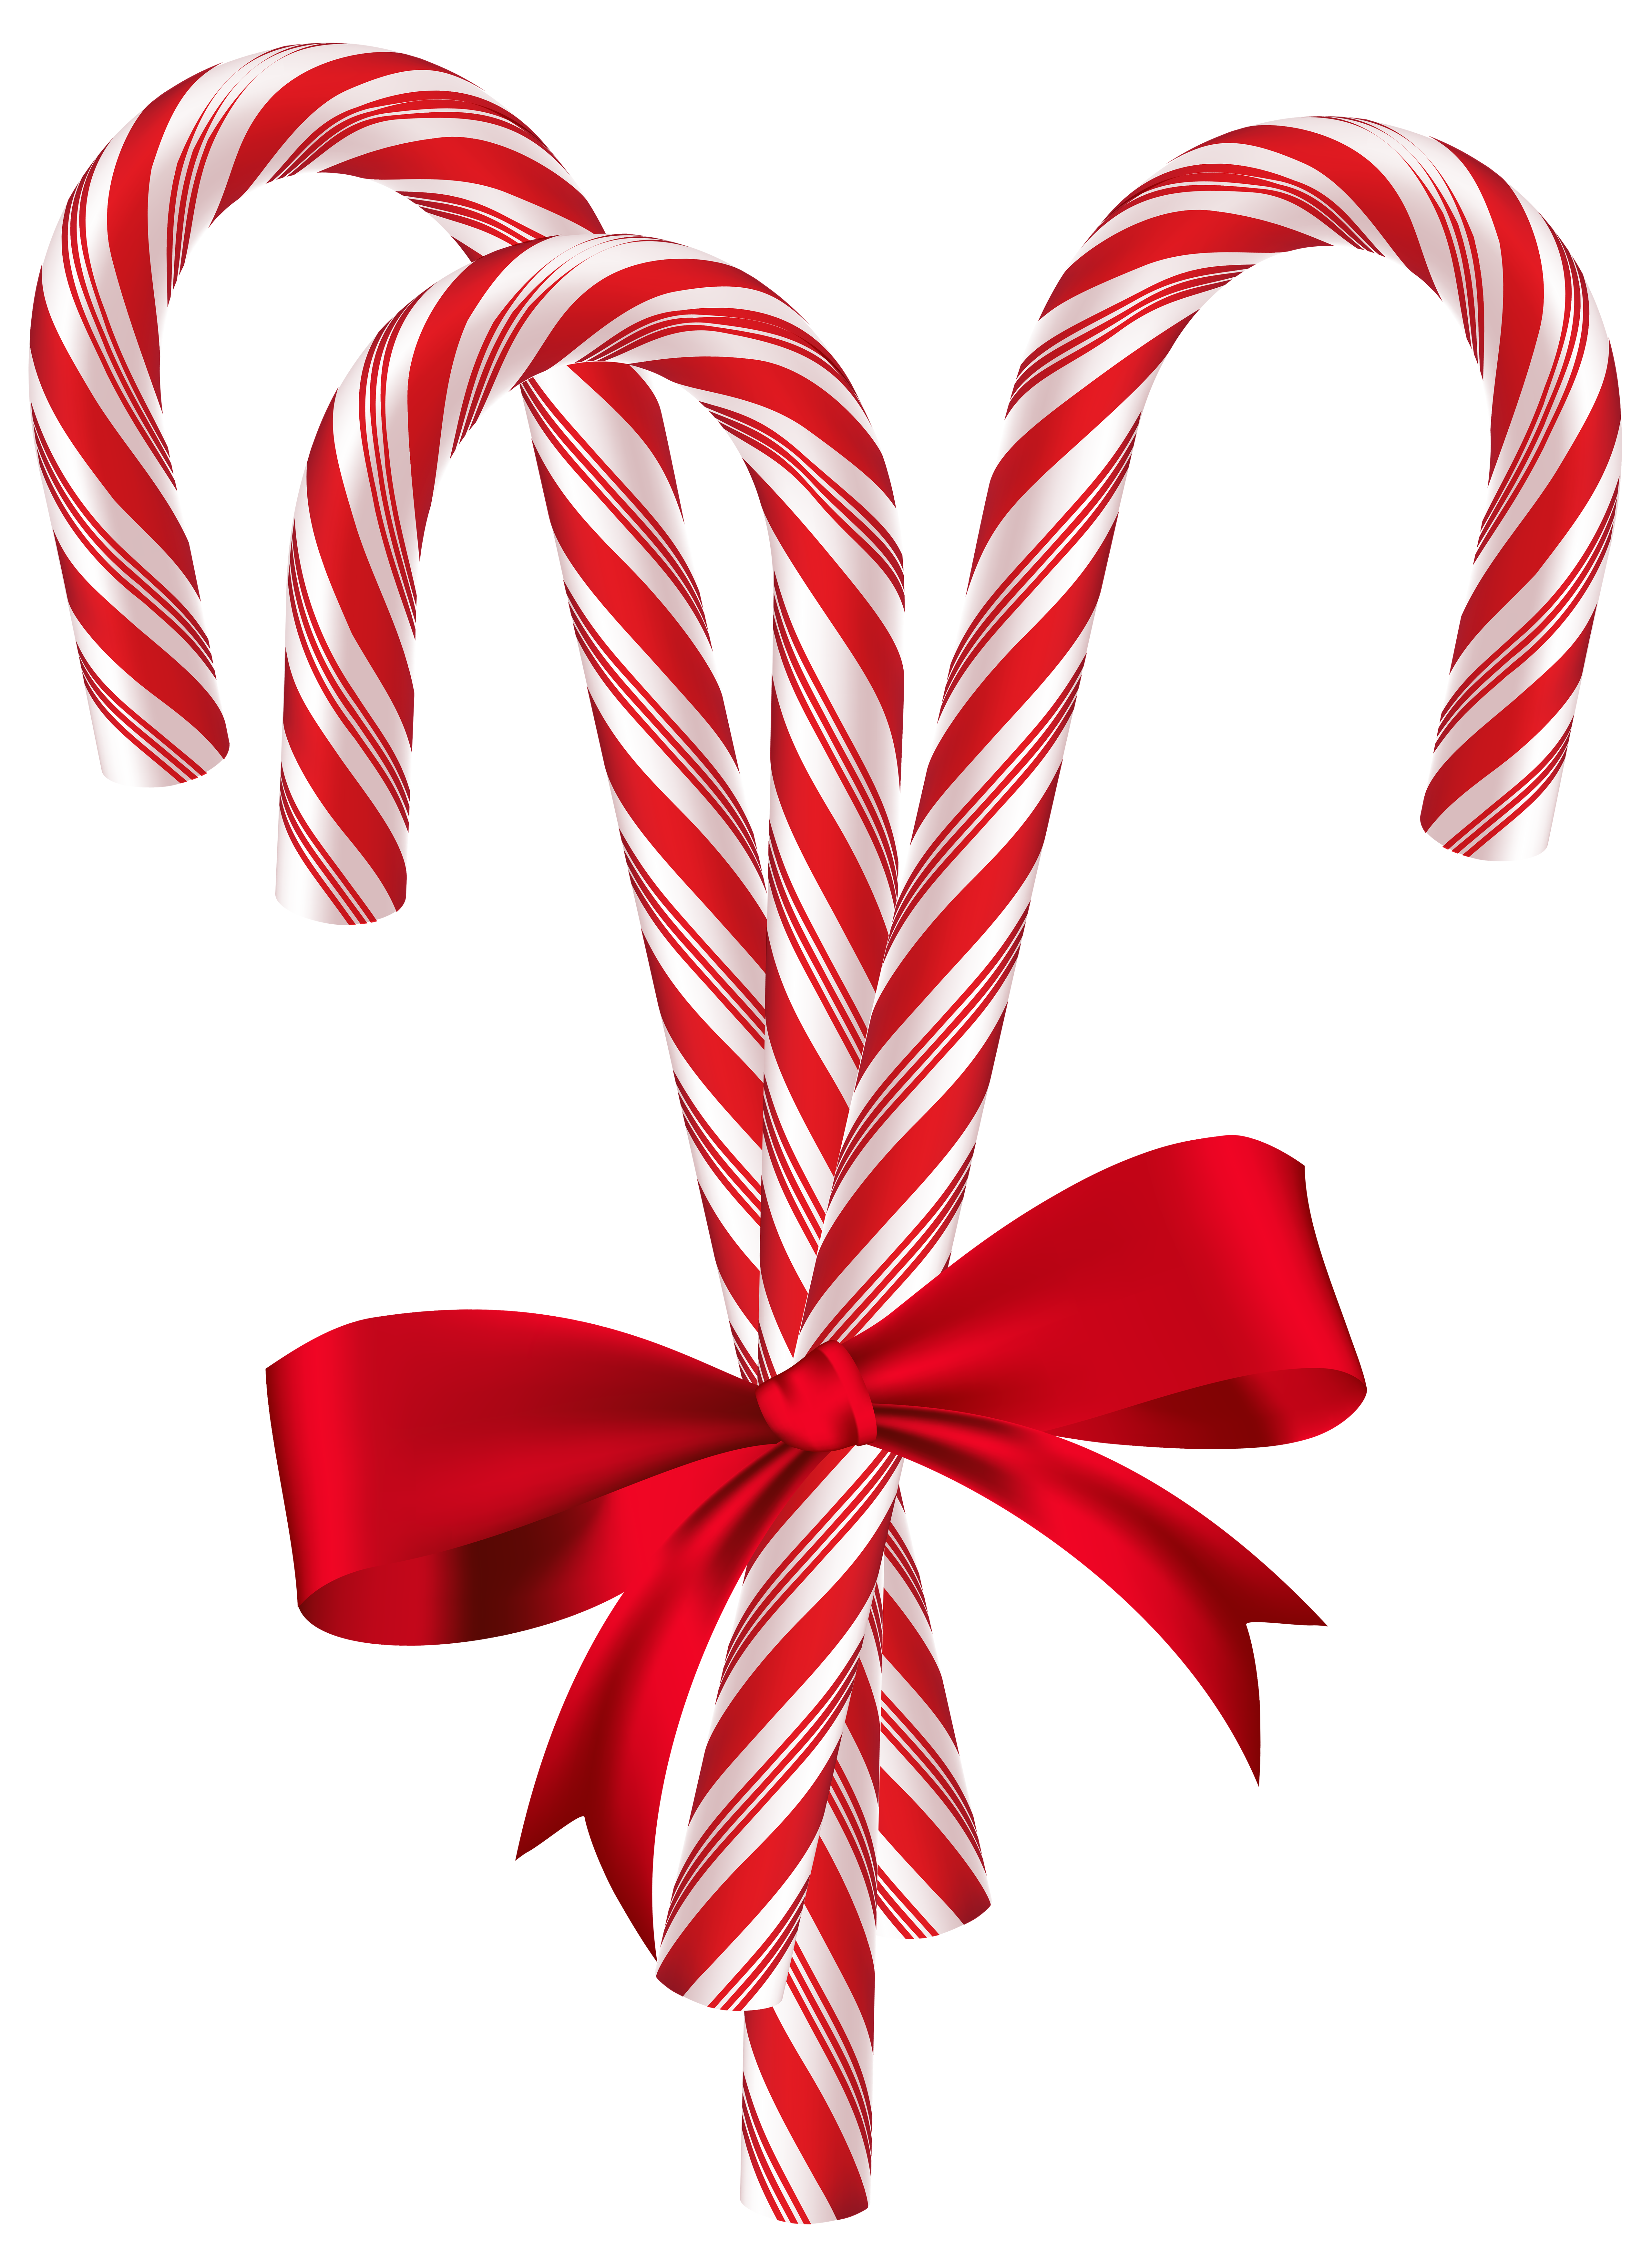 Candy Cane clipart transparent background Red size Image Yopriceville View